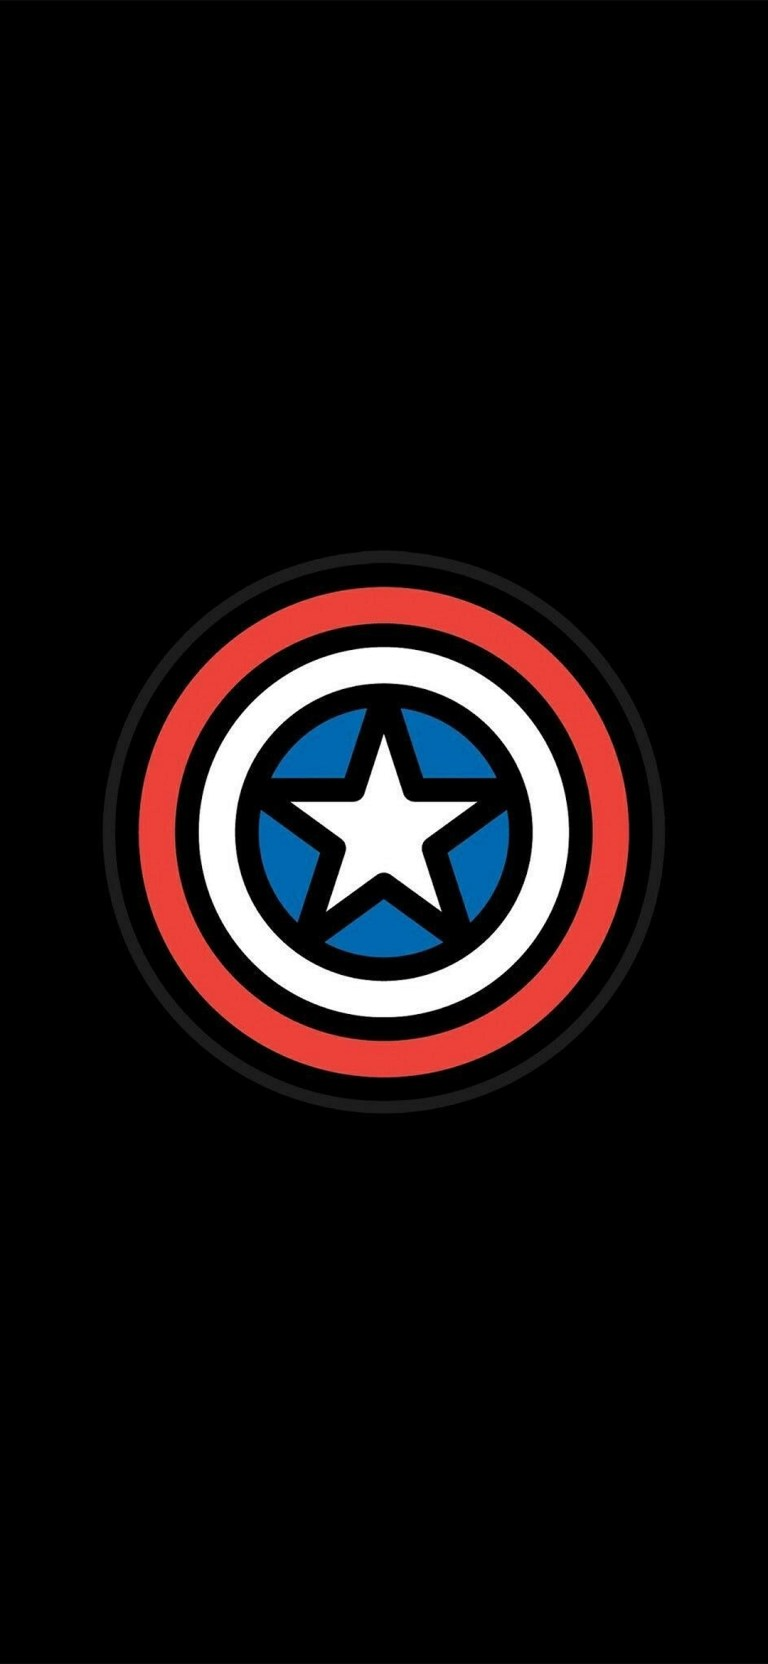 Captain America Shield Amoled 4K Wallpapers Download Free